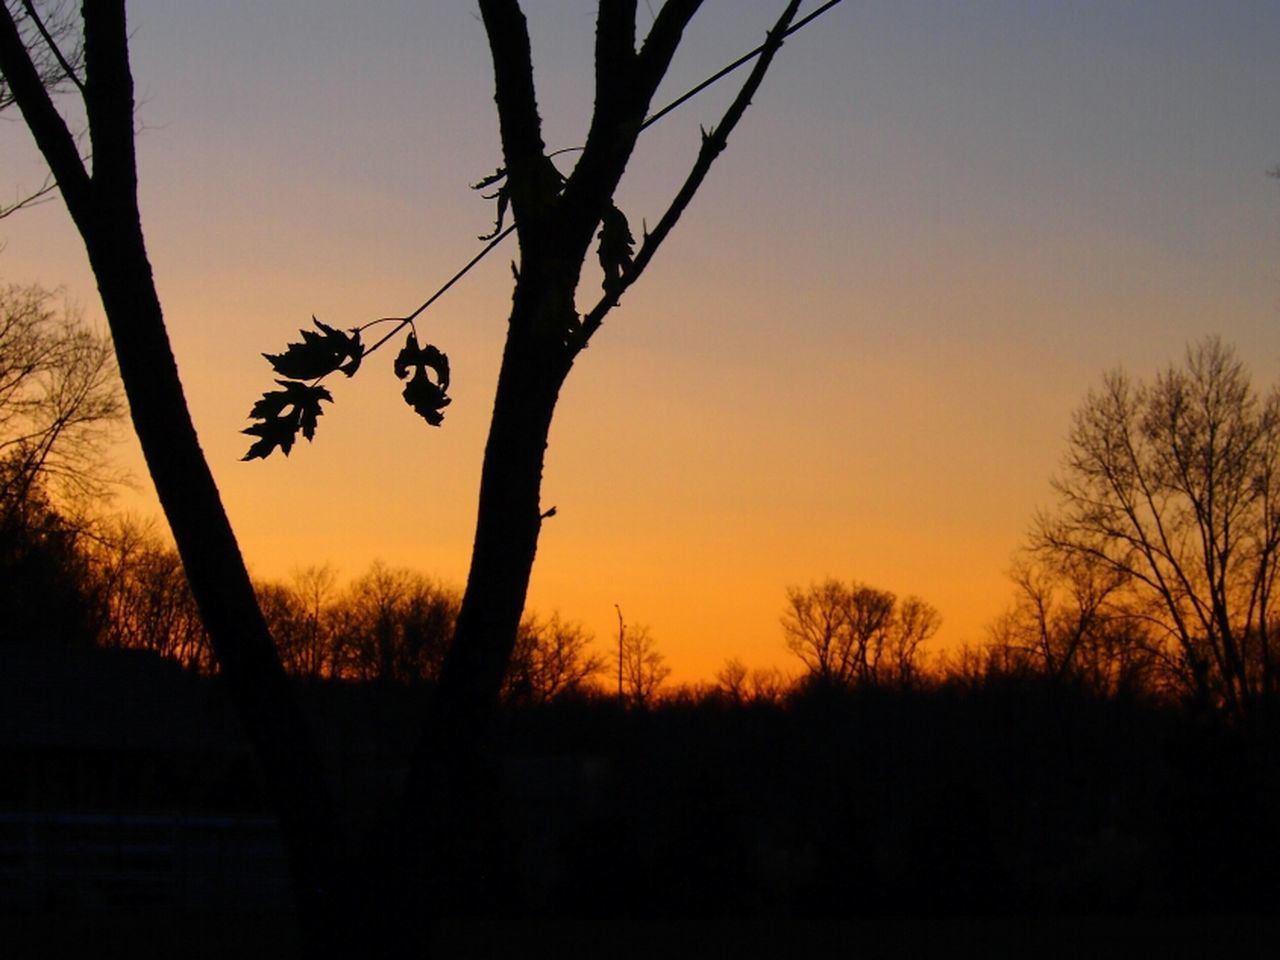 sunset, tree, silhouette, nature, beauty in nature, orange color, no people, scenics, tranquil scene, bare tree, sky, tranquility, branch, outdoors, growth, landscape, day